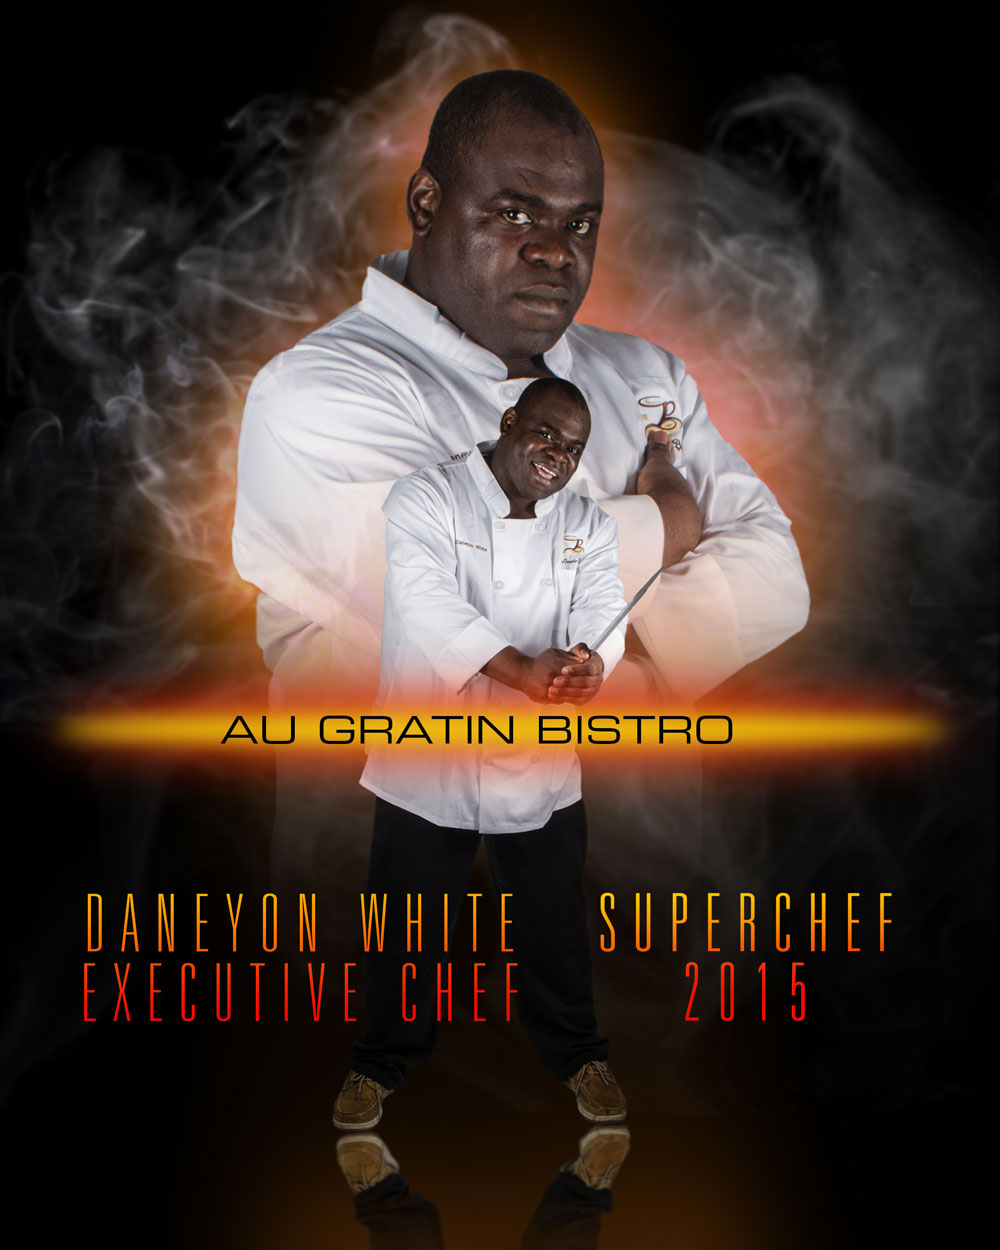 Daneyon White, Executive Chef, Au Gratin Bistro